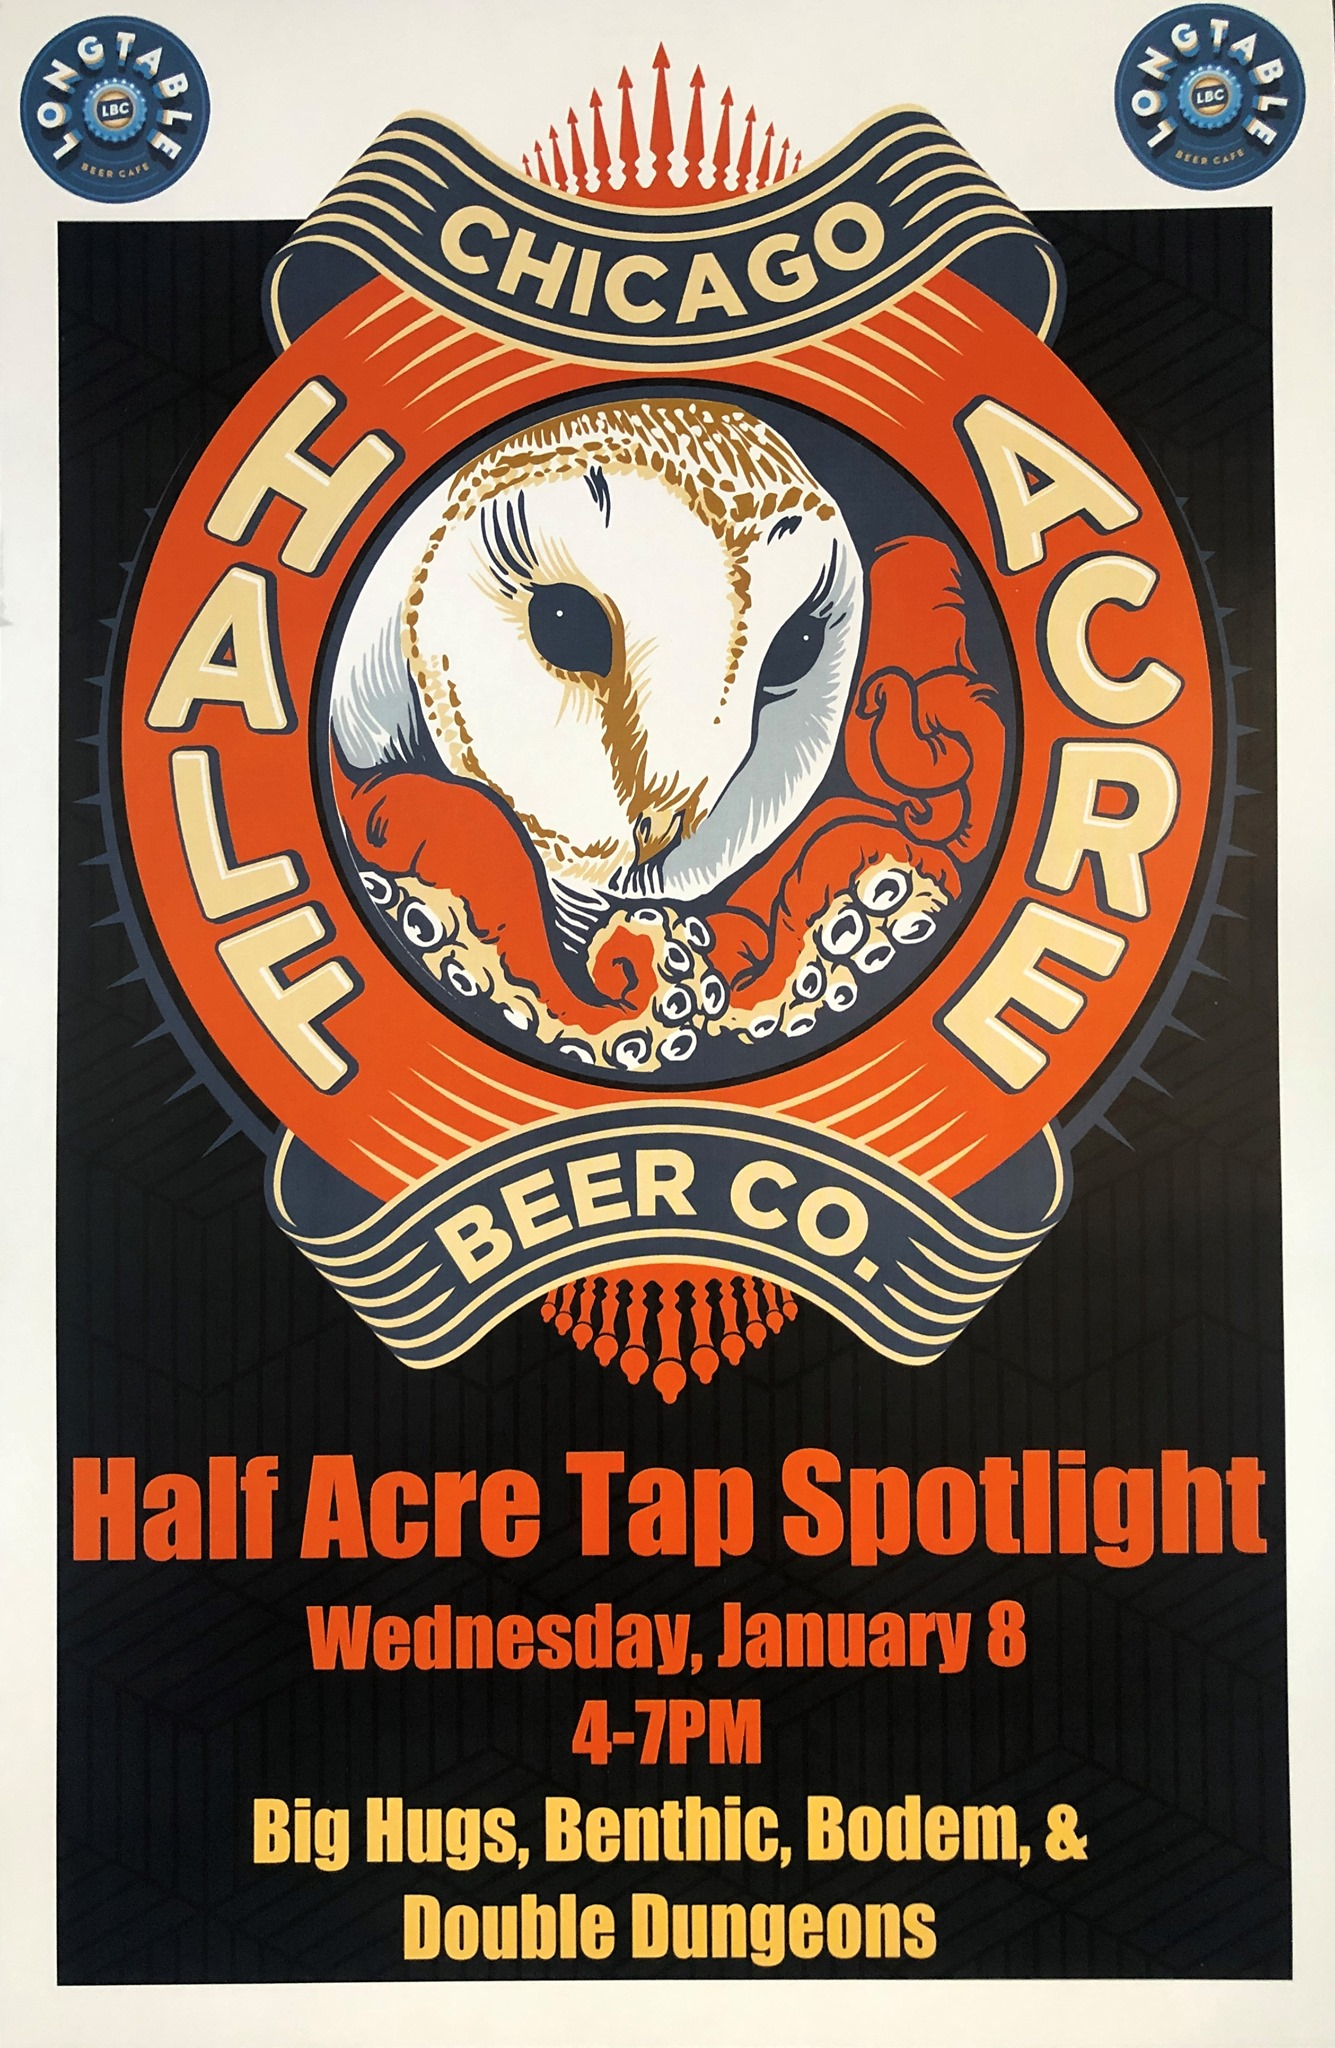 Half Acre Beer Company Tap Spotlight – Let's Start 2020 Right!